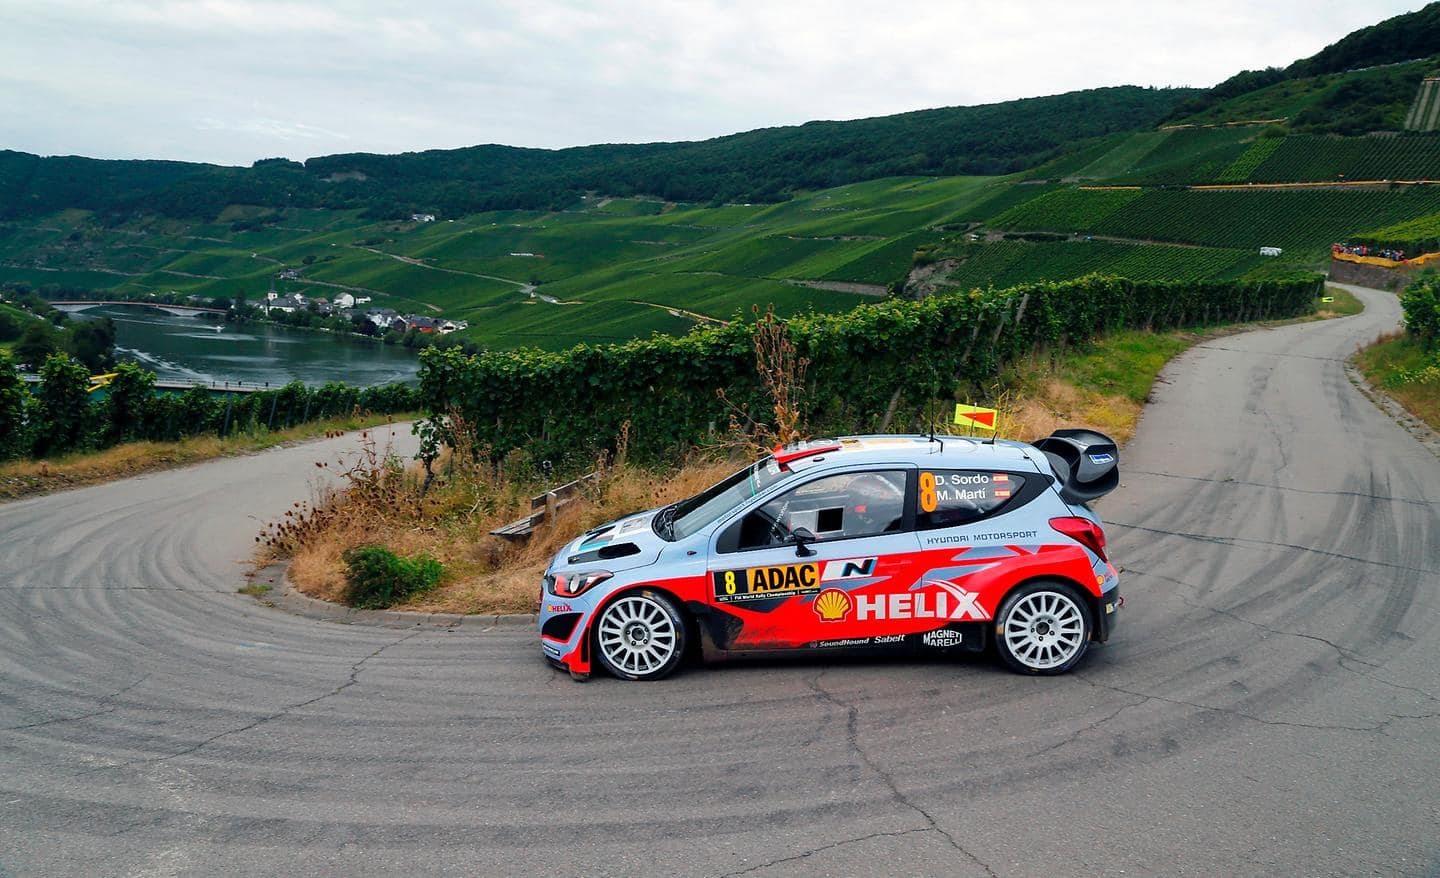 Hyundai Motorsport returns to scene of first victory with four-car entry for Rallye Deutschland